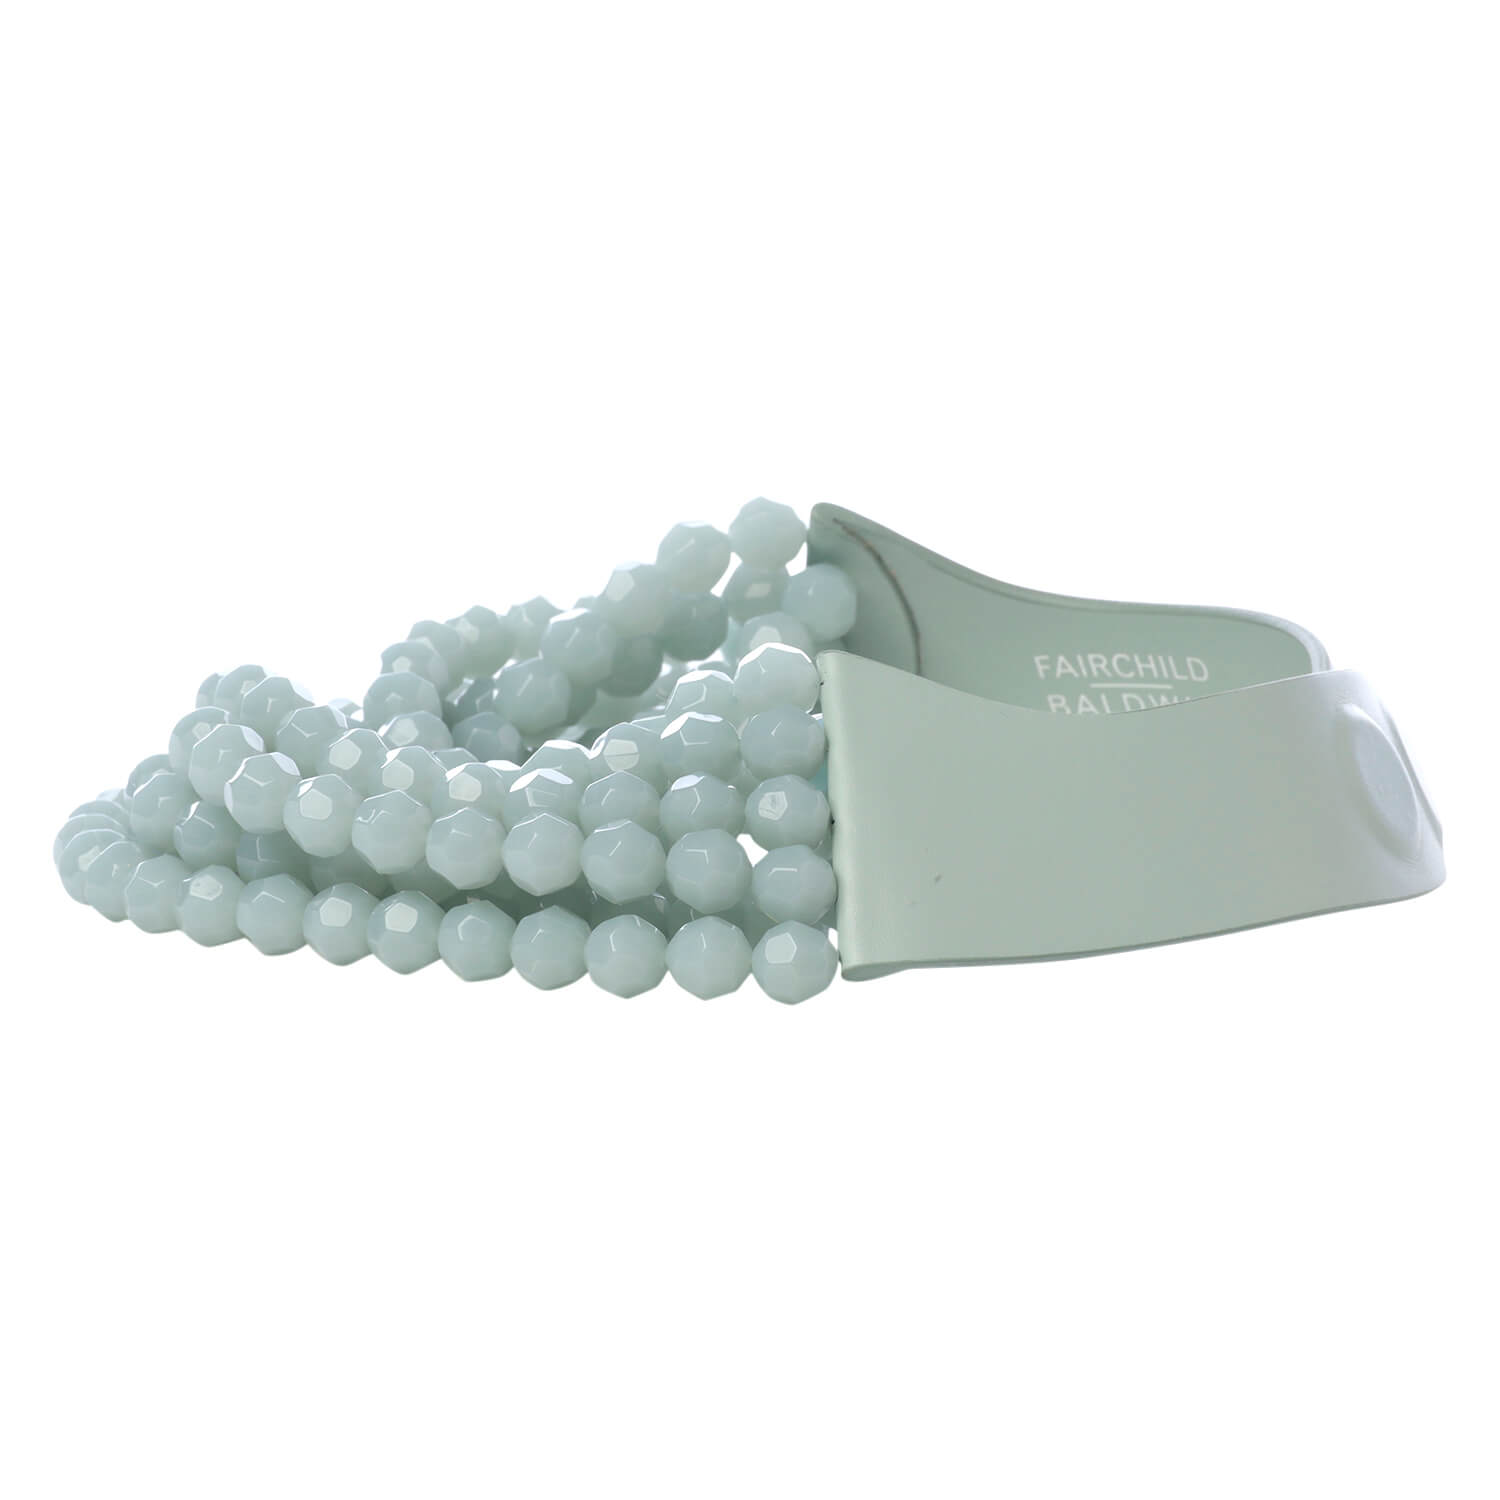 Light Seafoam - Fairchild Baldwin - Handmade in Italy